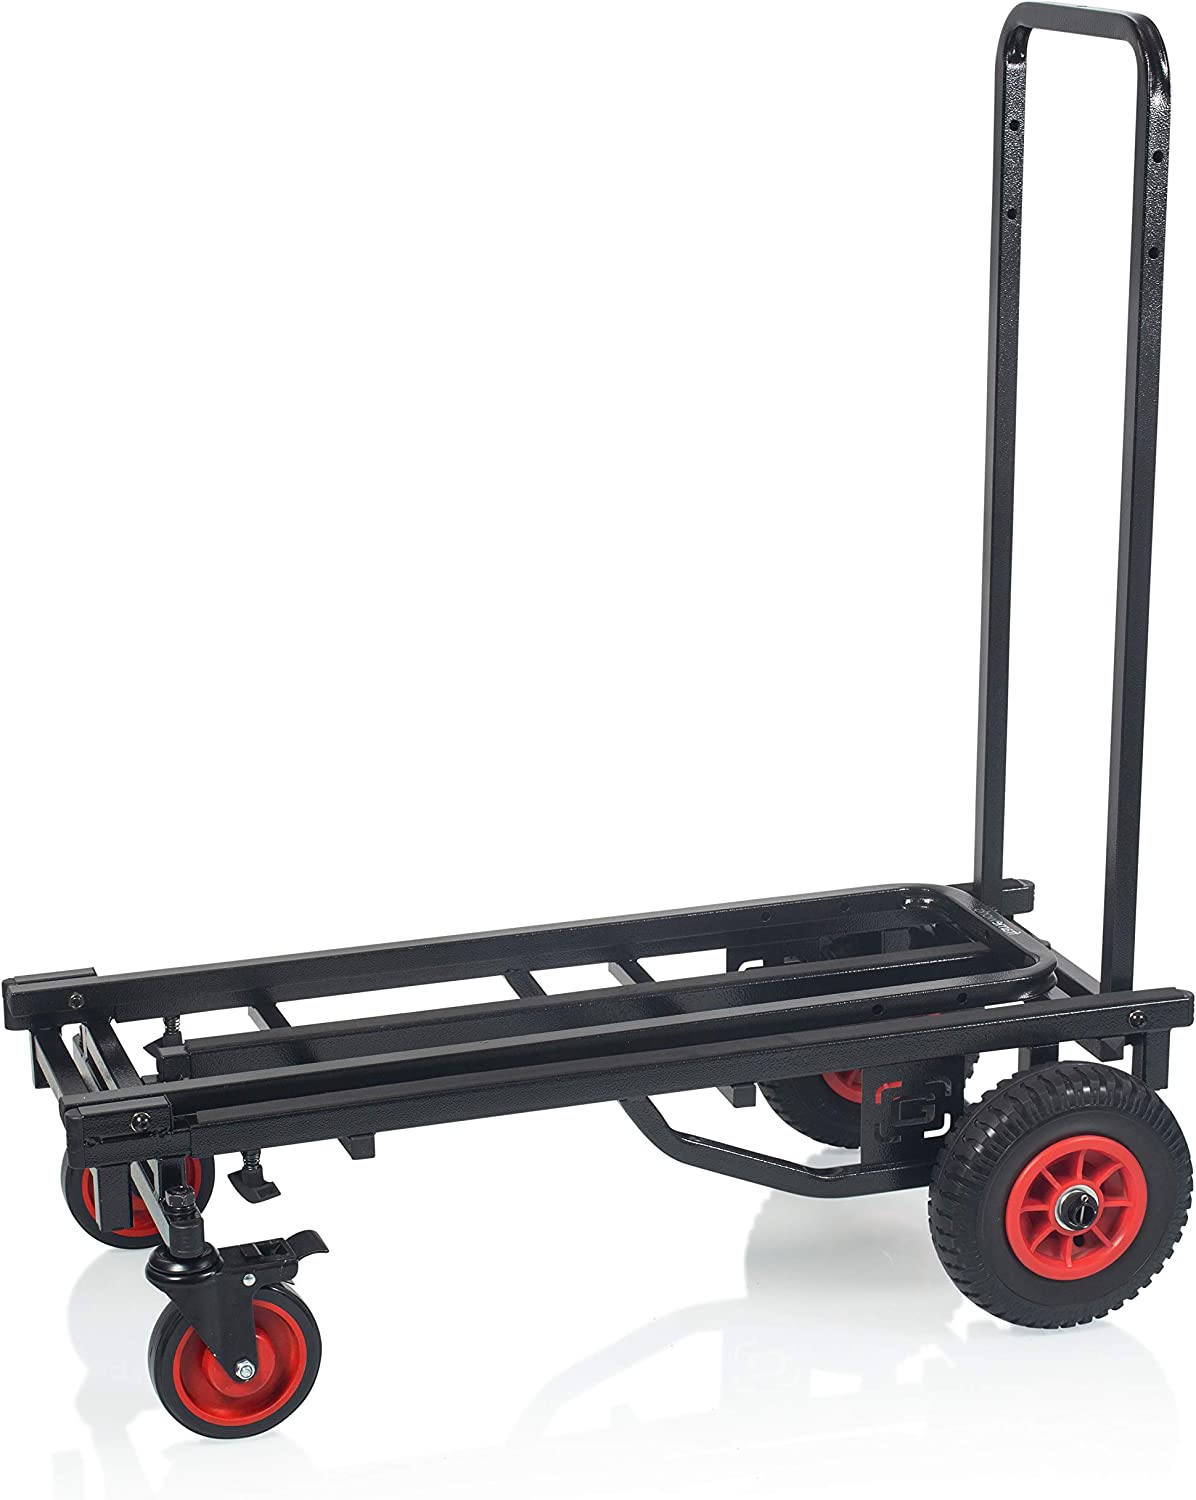 Amazon Com Gator Frameworks Folding Multi Utility Cart With 30 52 Extension 500 Lbs Load Capacity Gfw Utl Cart52 Musical Instruments